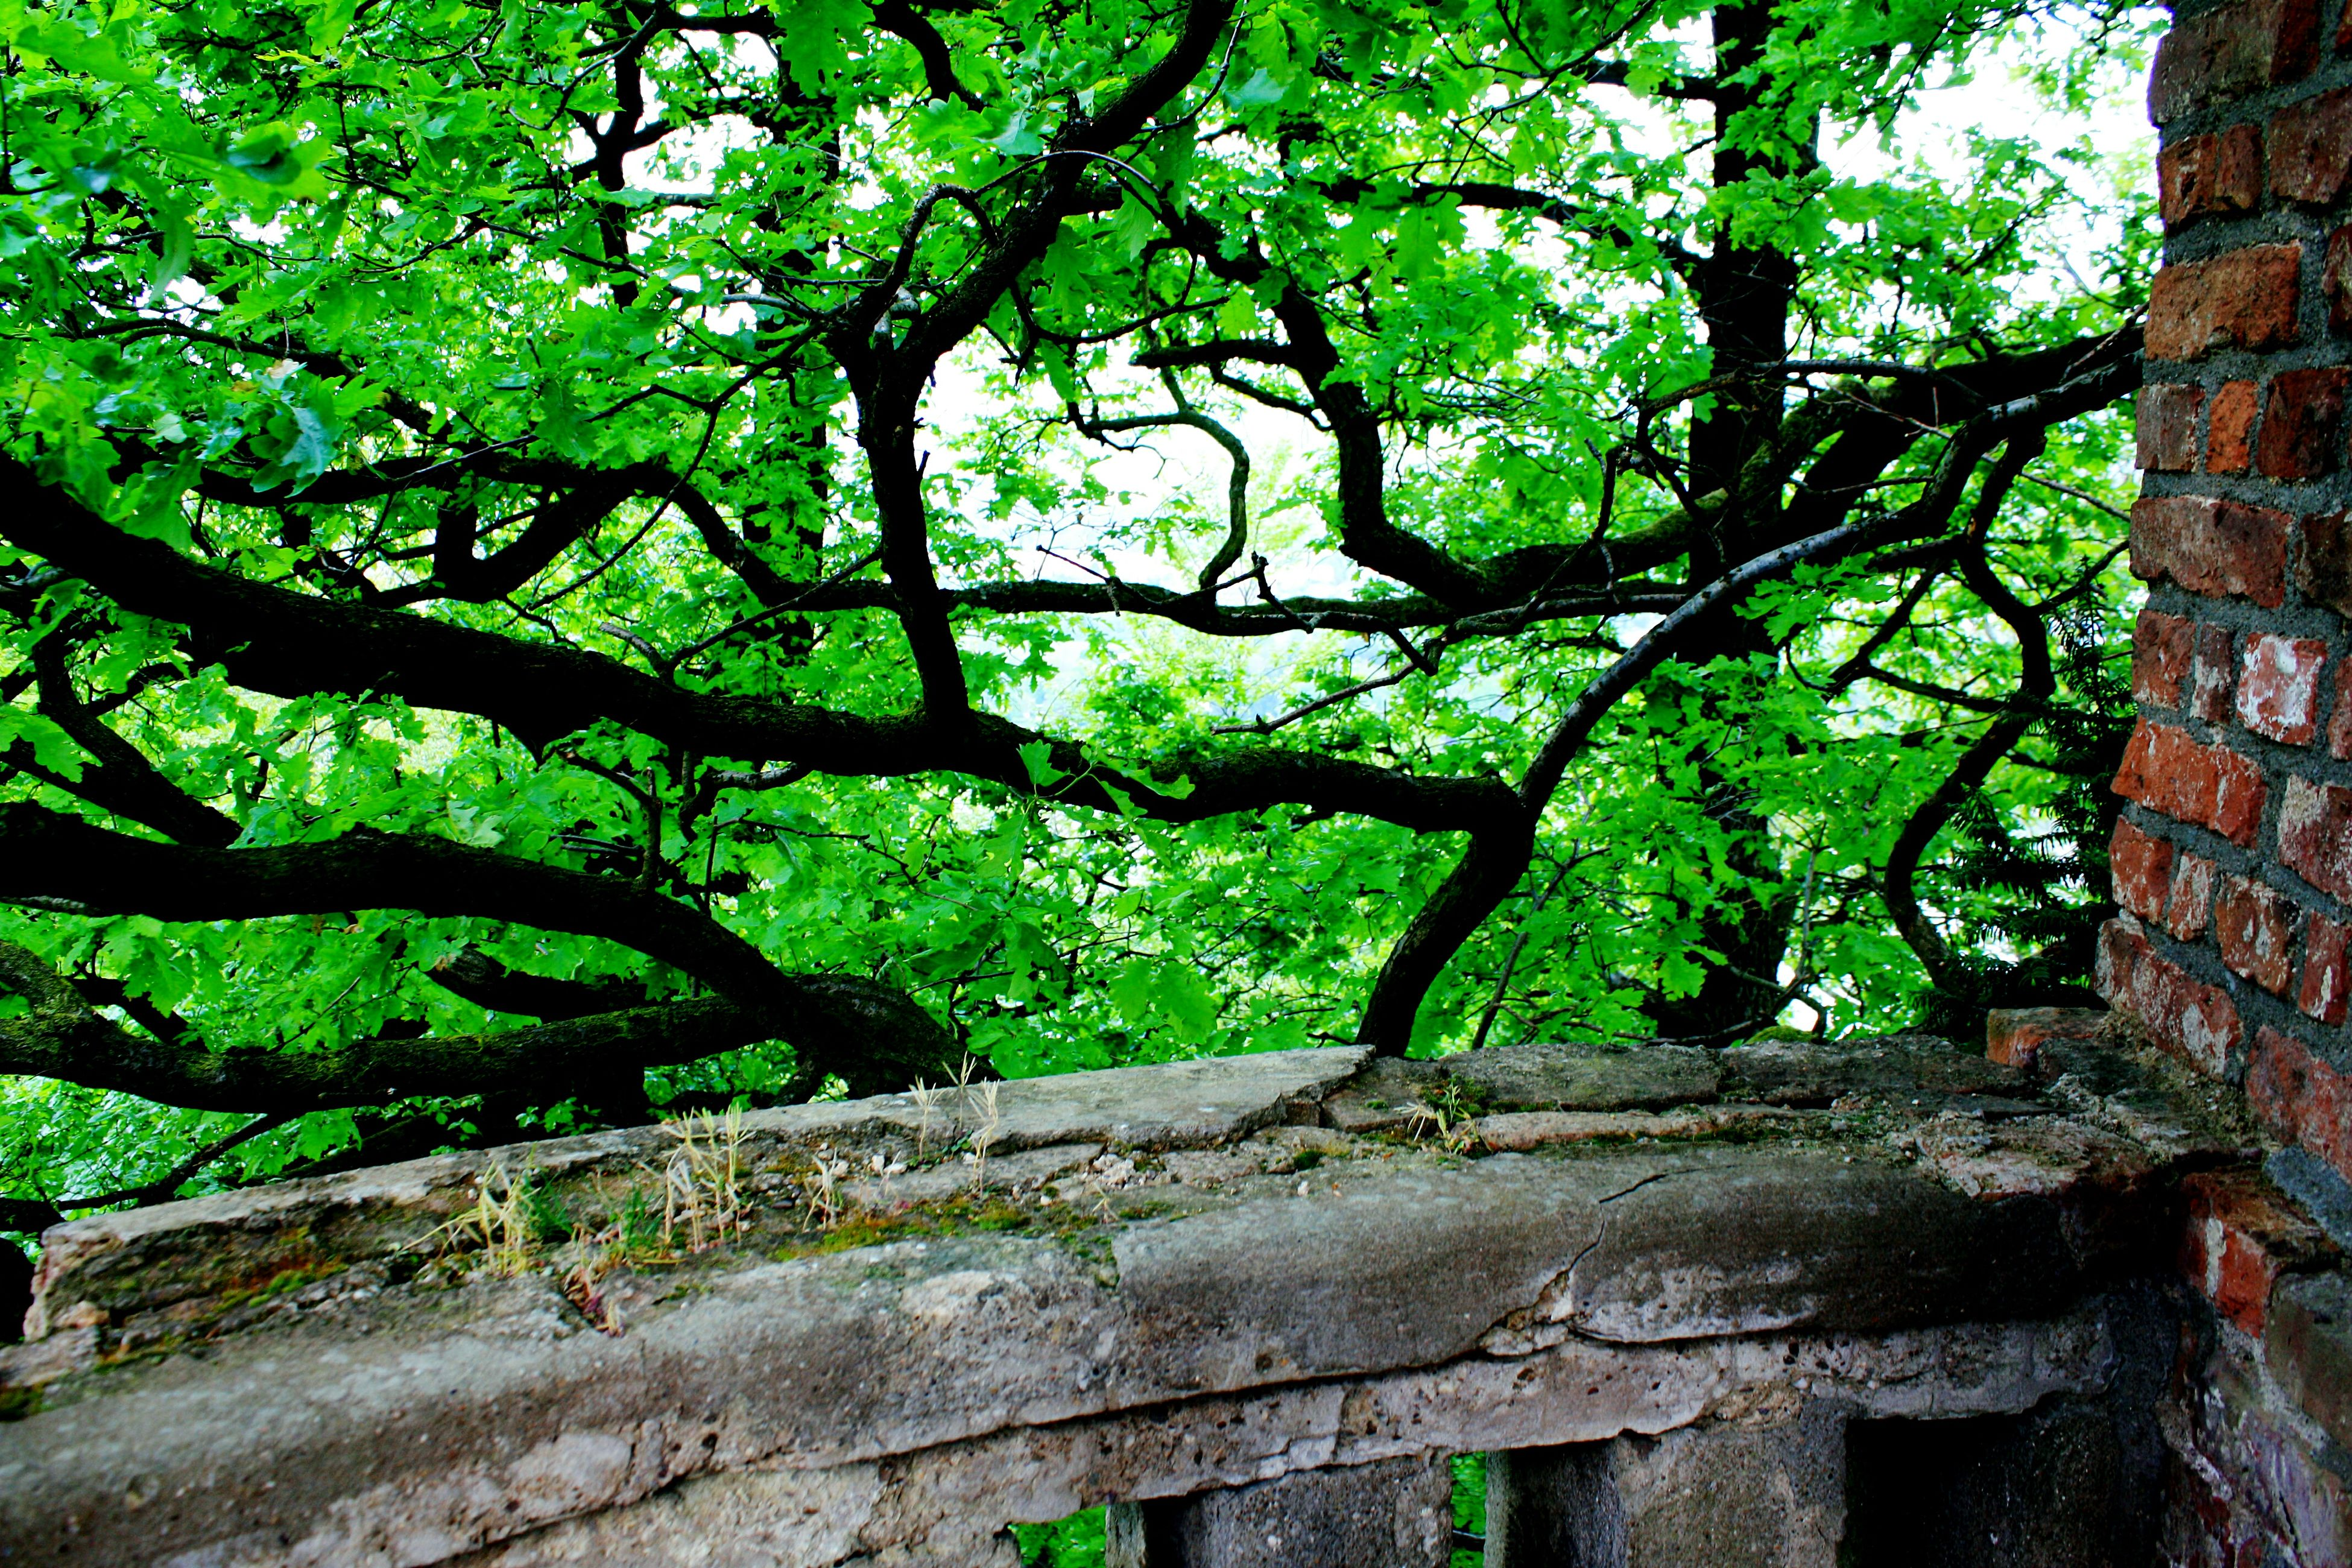 tree, growth, branch, green color, tree trunk, nature, low angle view, tranquility, forest, wood - material, outdoors, day, beauty in nature, built structure, no people, lush foliage, plant, leaf, green, sunlight